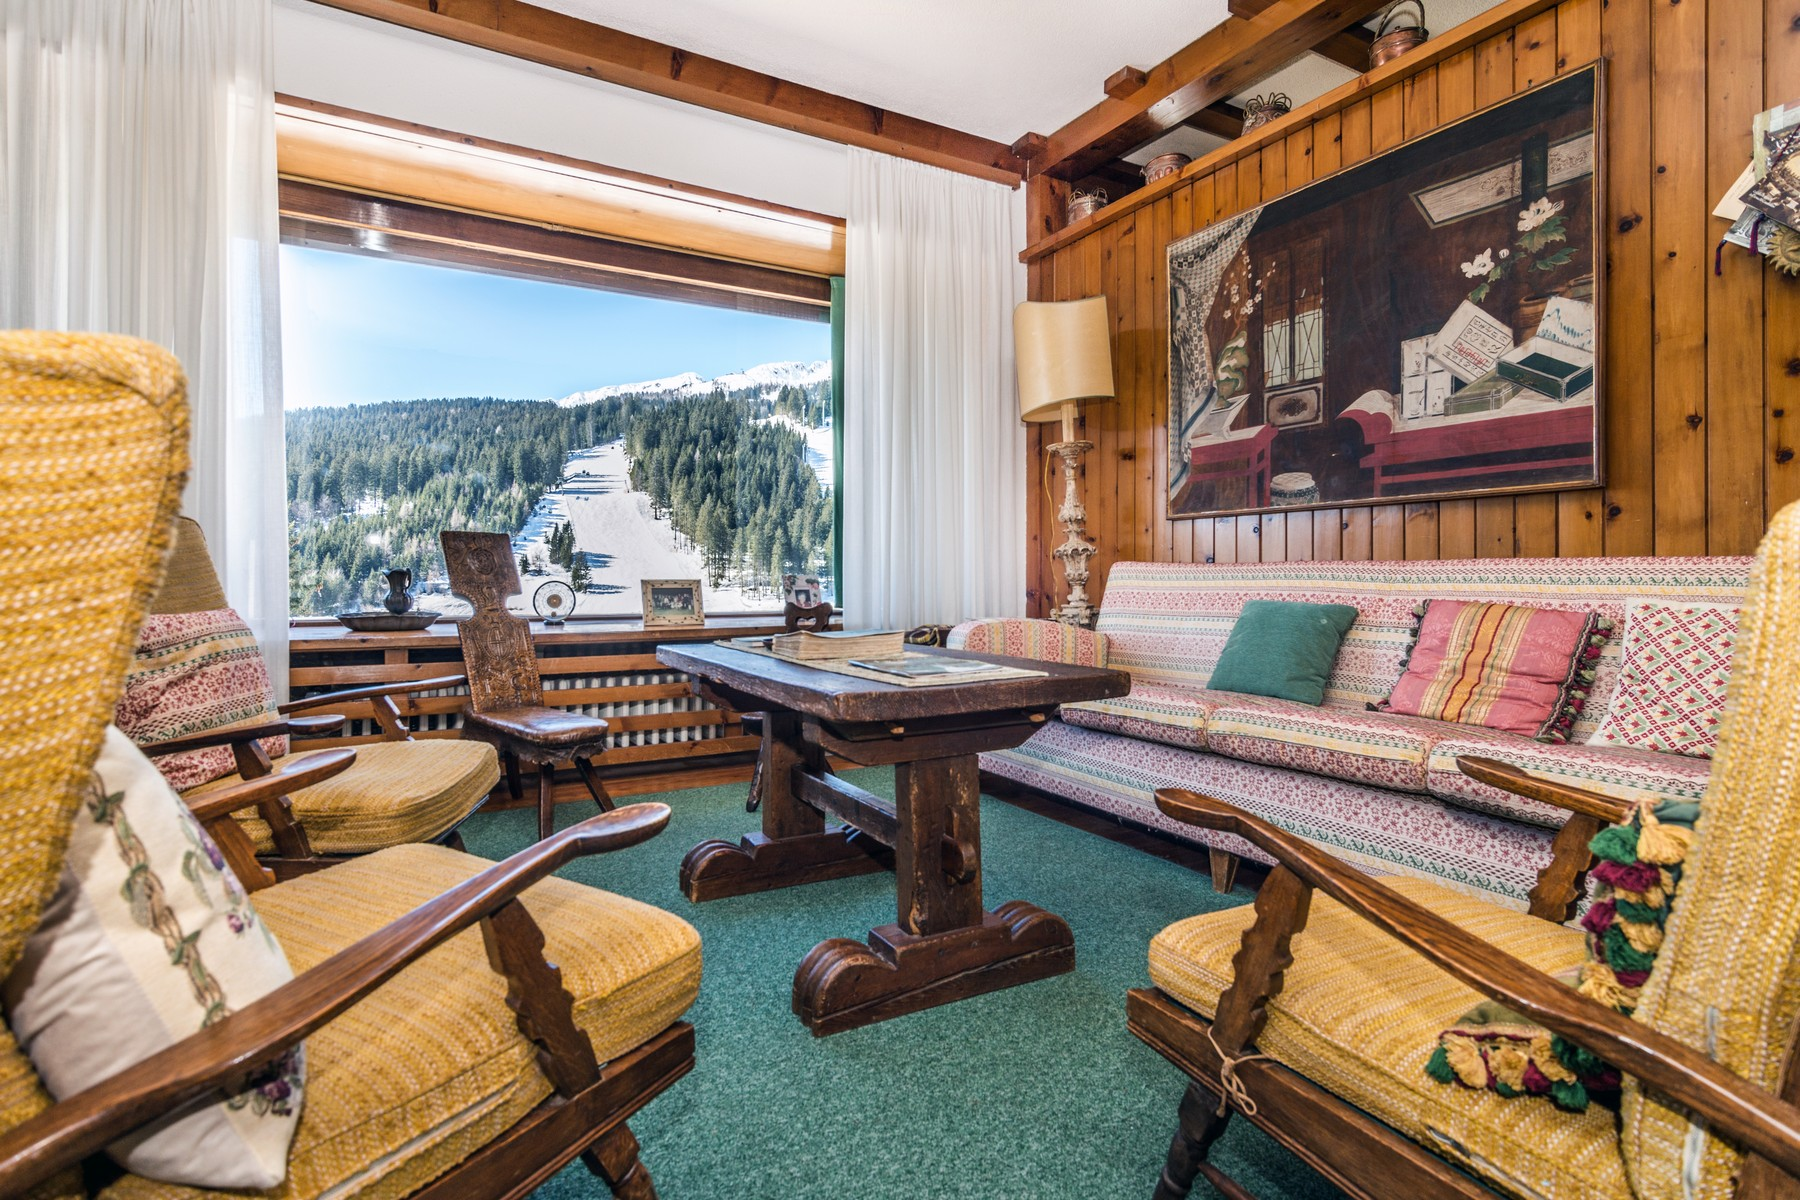 Additional photo for property listing at Mountain villa with private park on the Dolomites Madonna di Campiglio Madonna Di Campiglio, Trento 38086 Italy